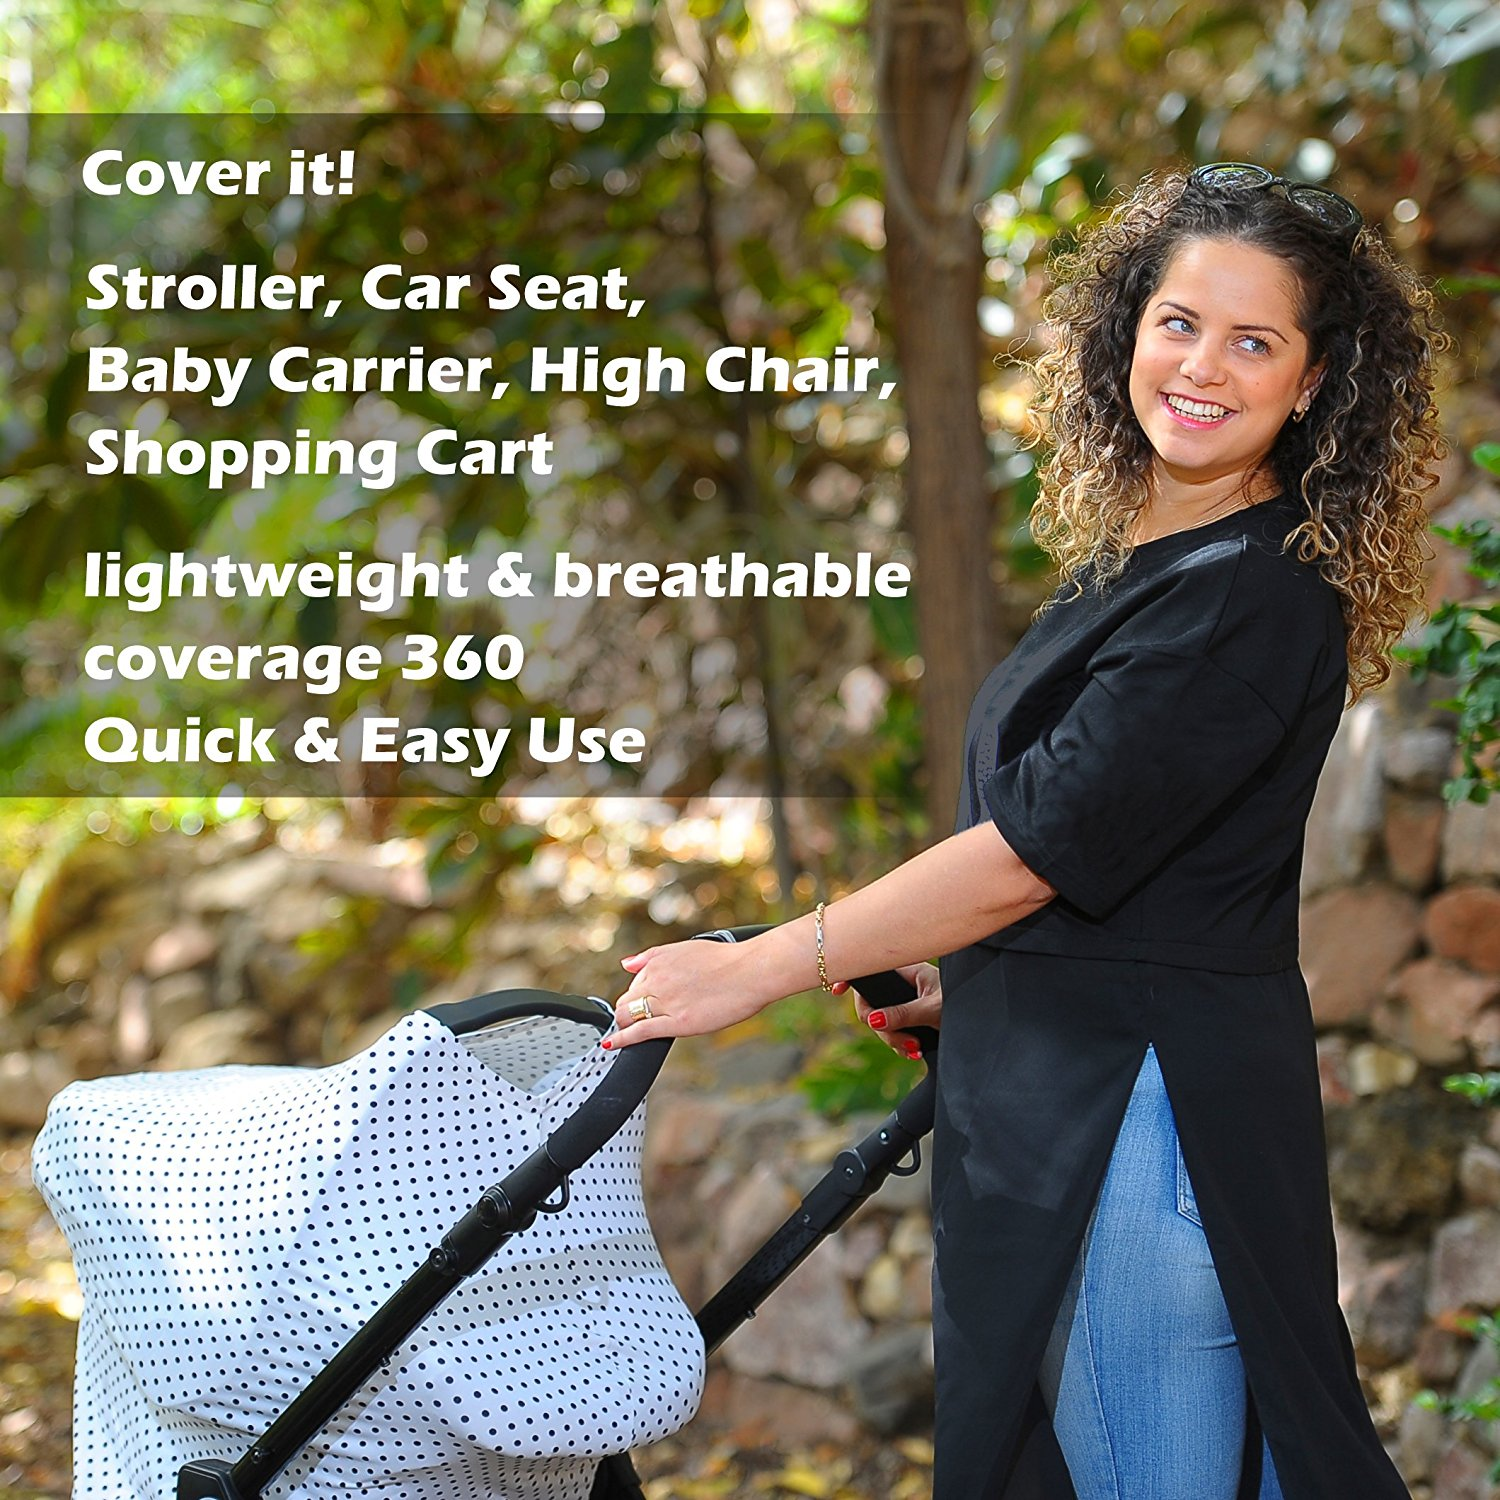 weather shield for stroller